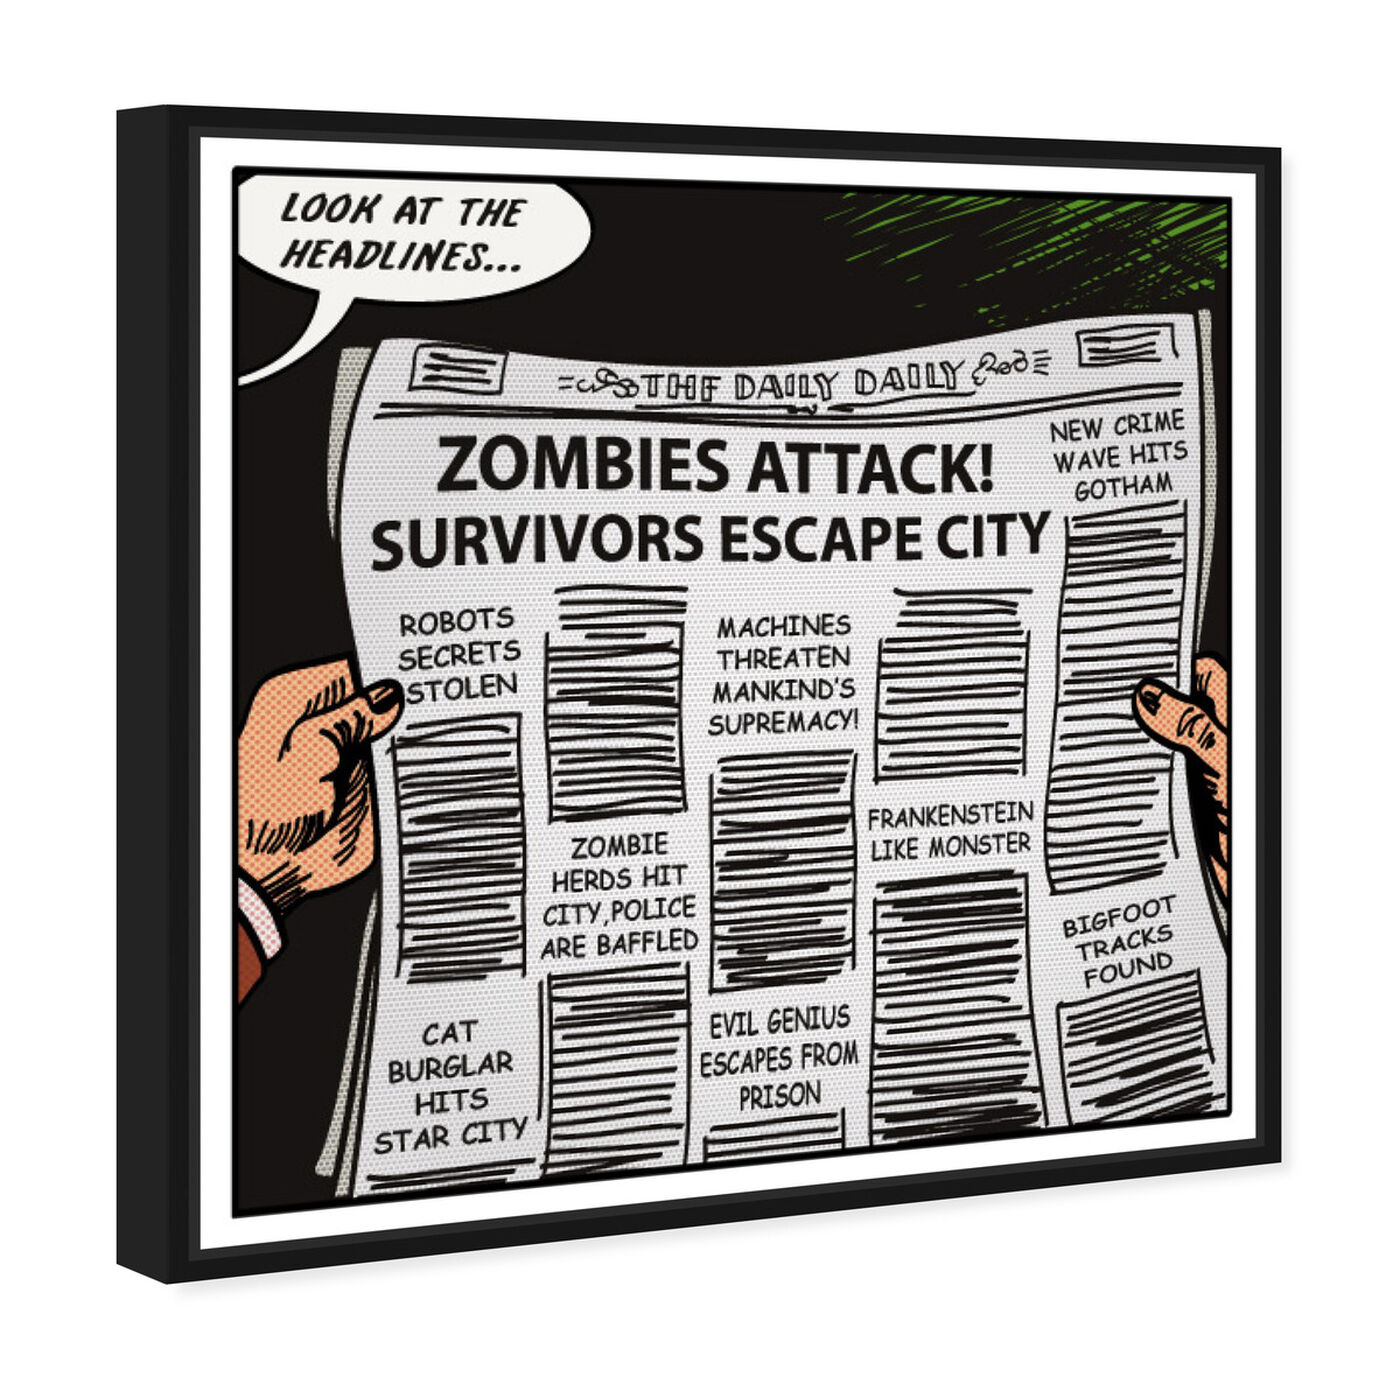 Angled view of Look At The Headlines featuring advertising and comics art.